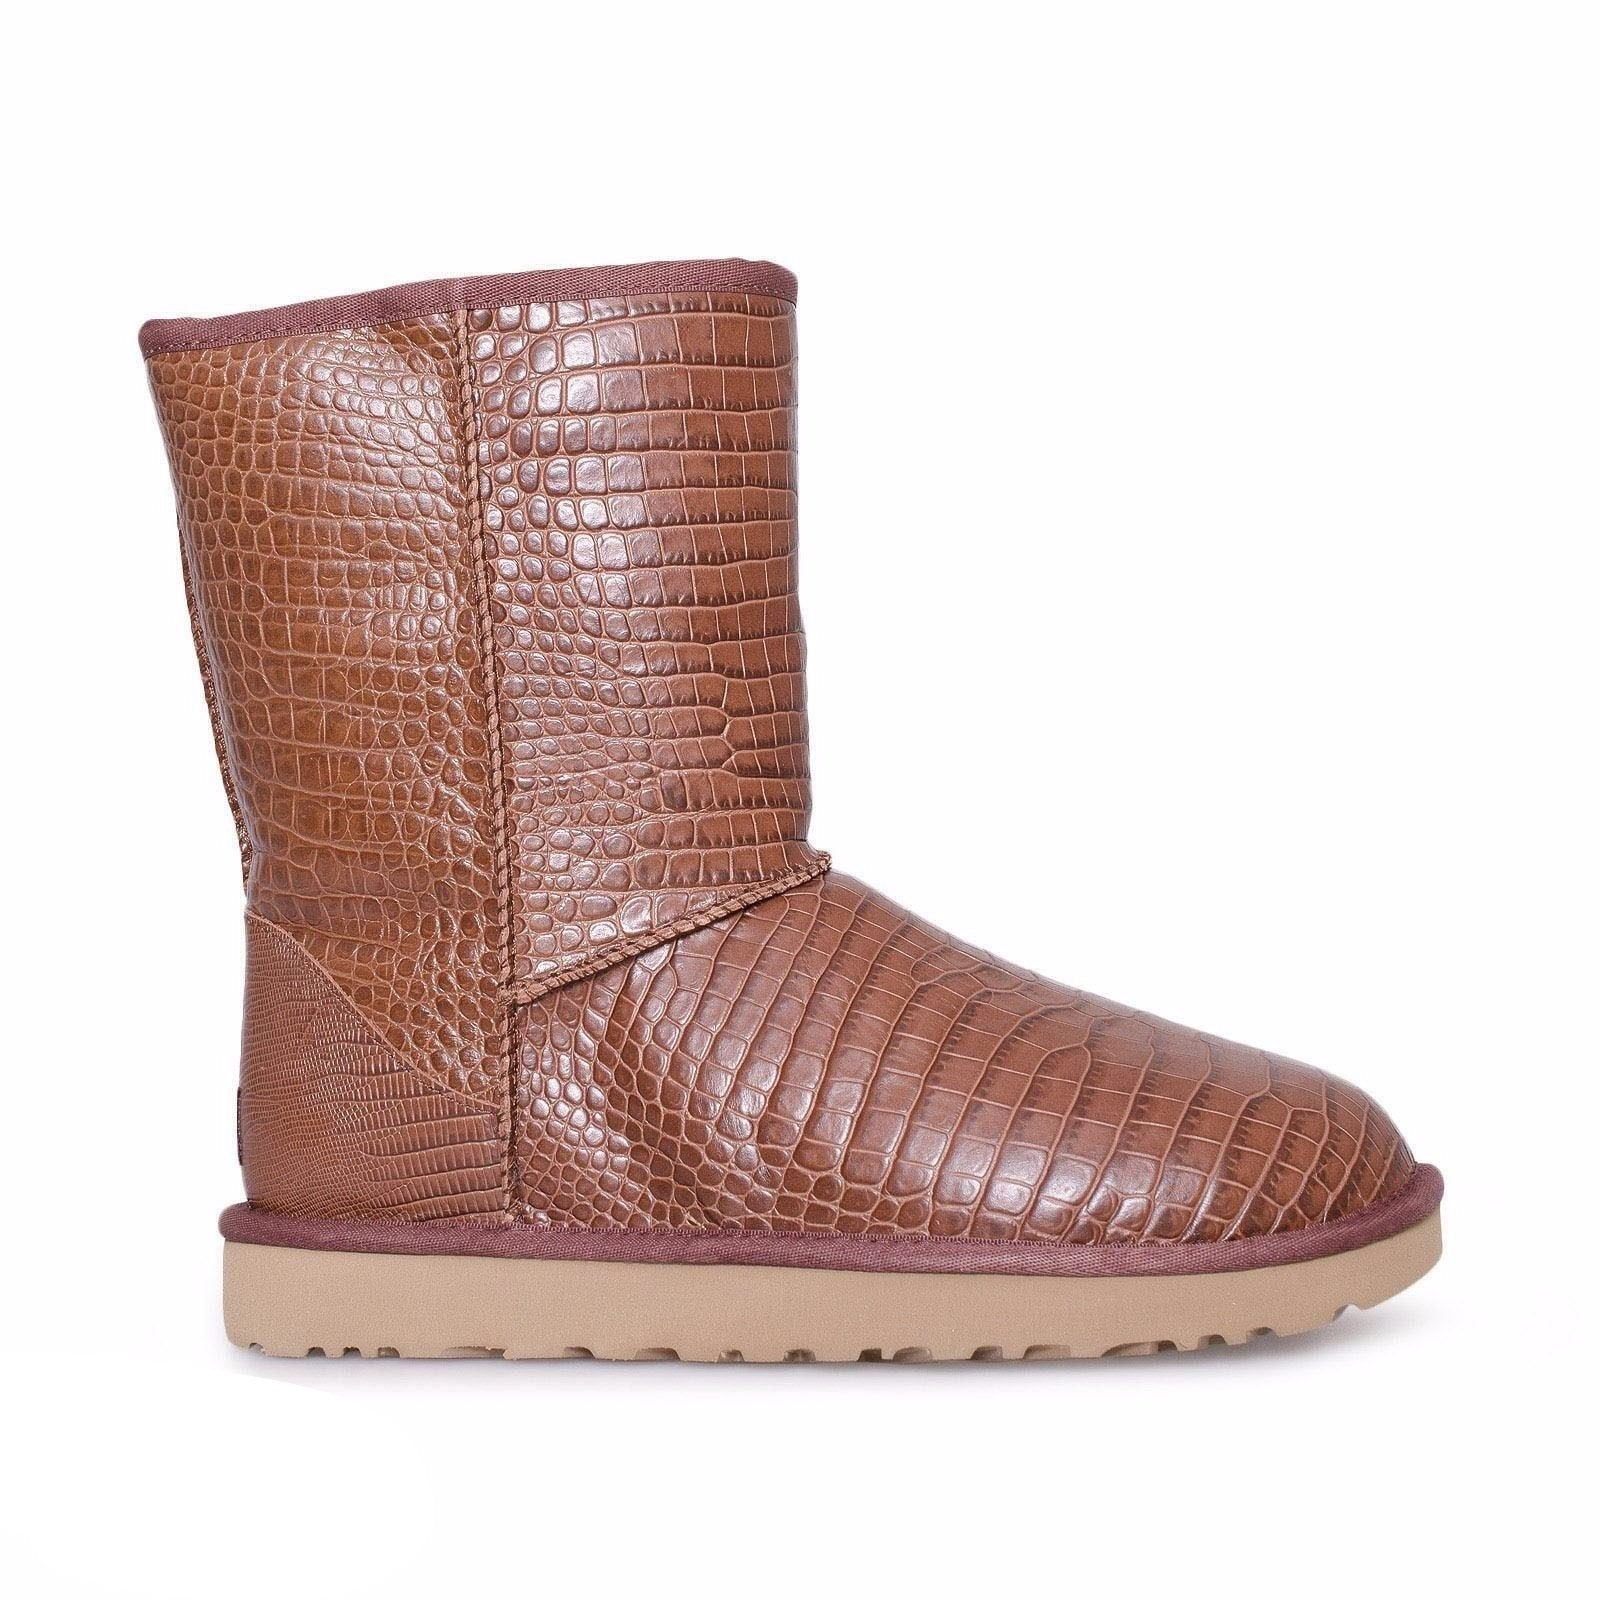 UGG Classic Short Croco Spice Boots